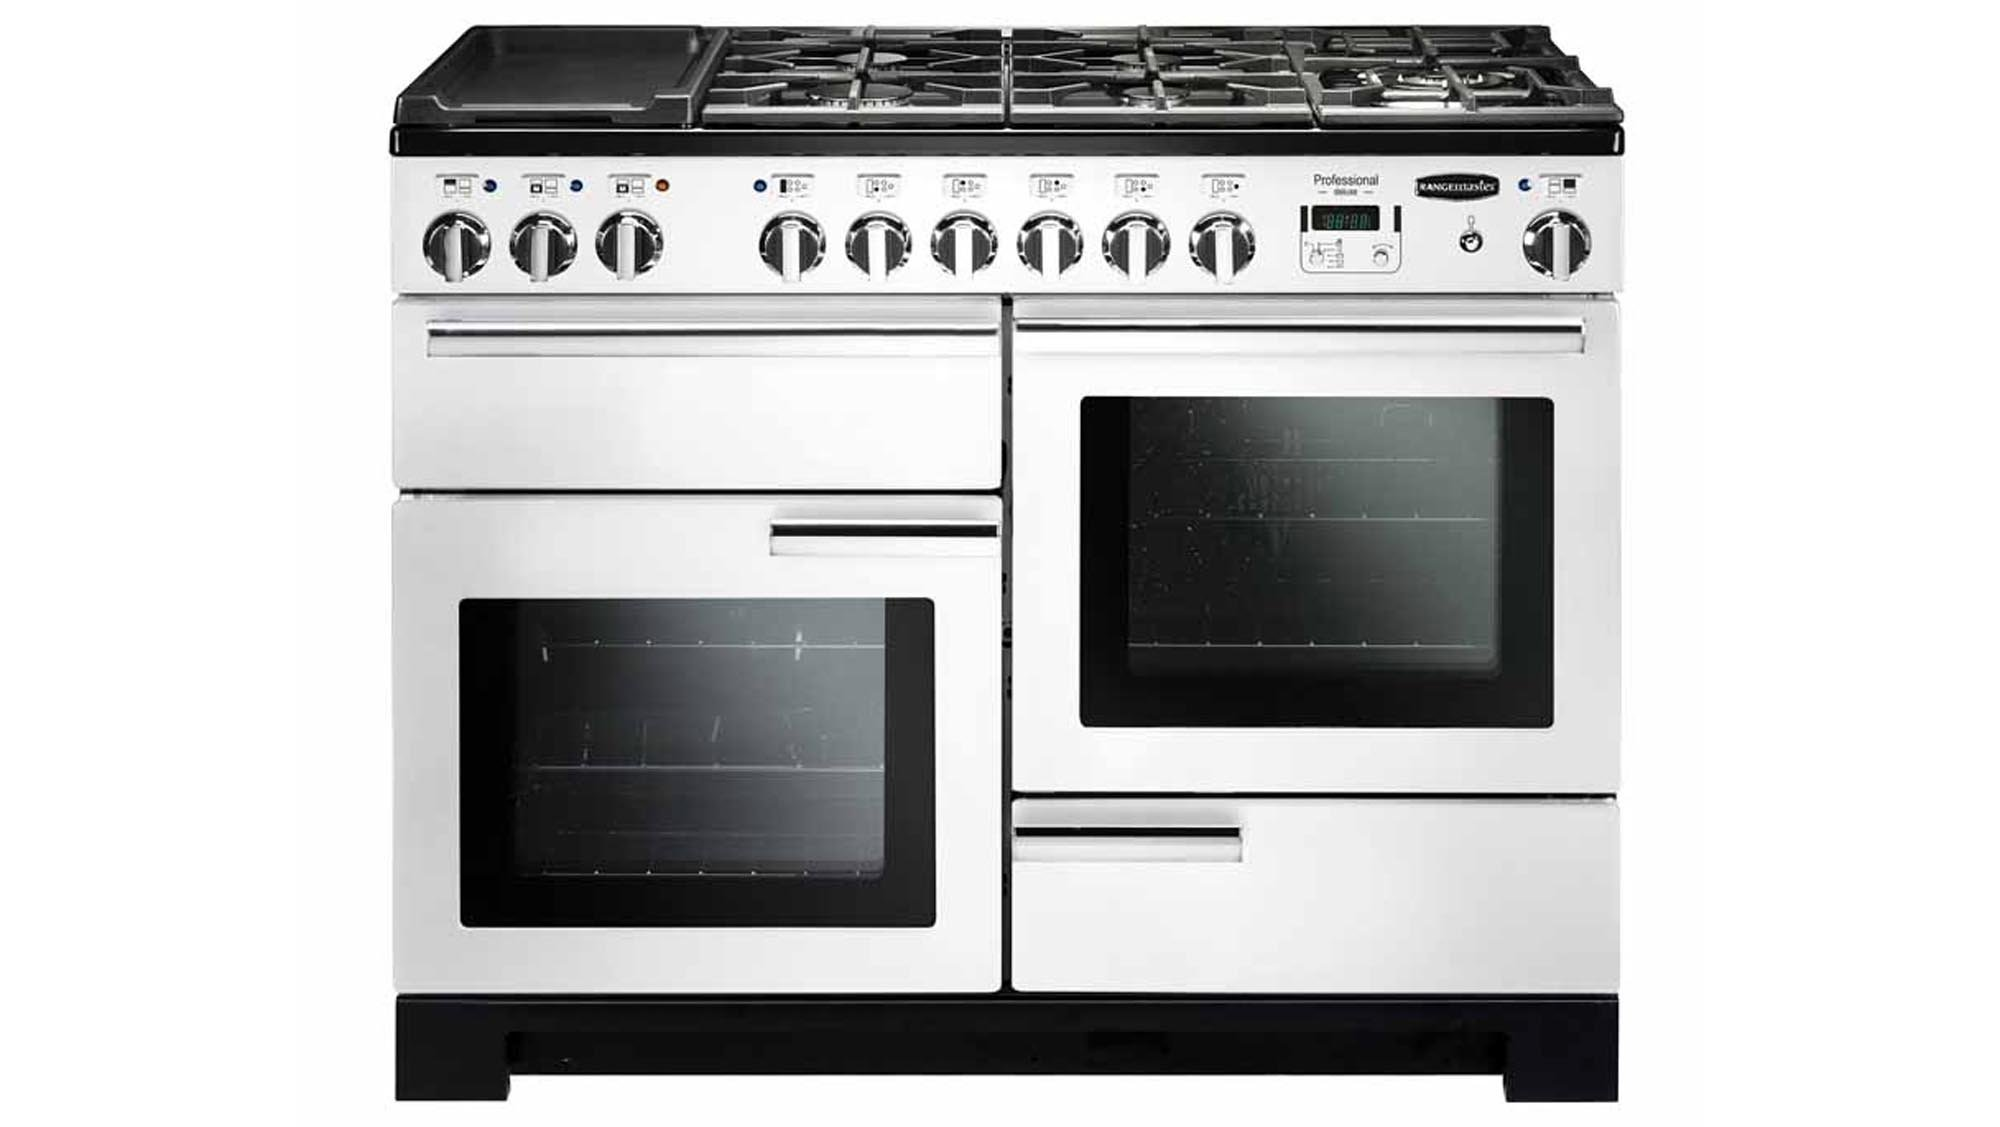 Best oven the best ovens hobs and cookers from 380 Kitchen appliance reviews uk